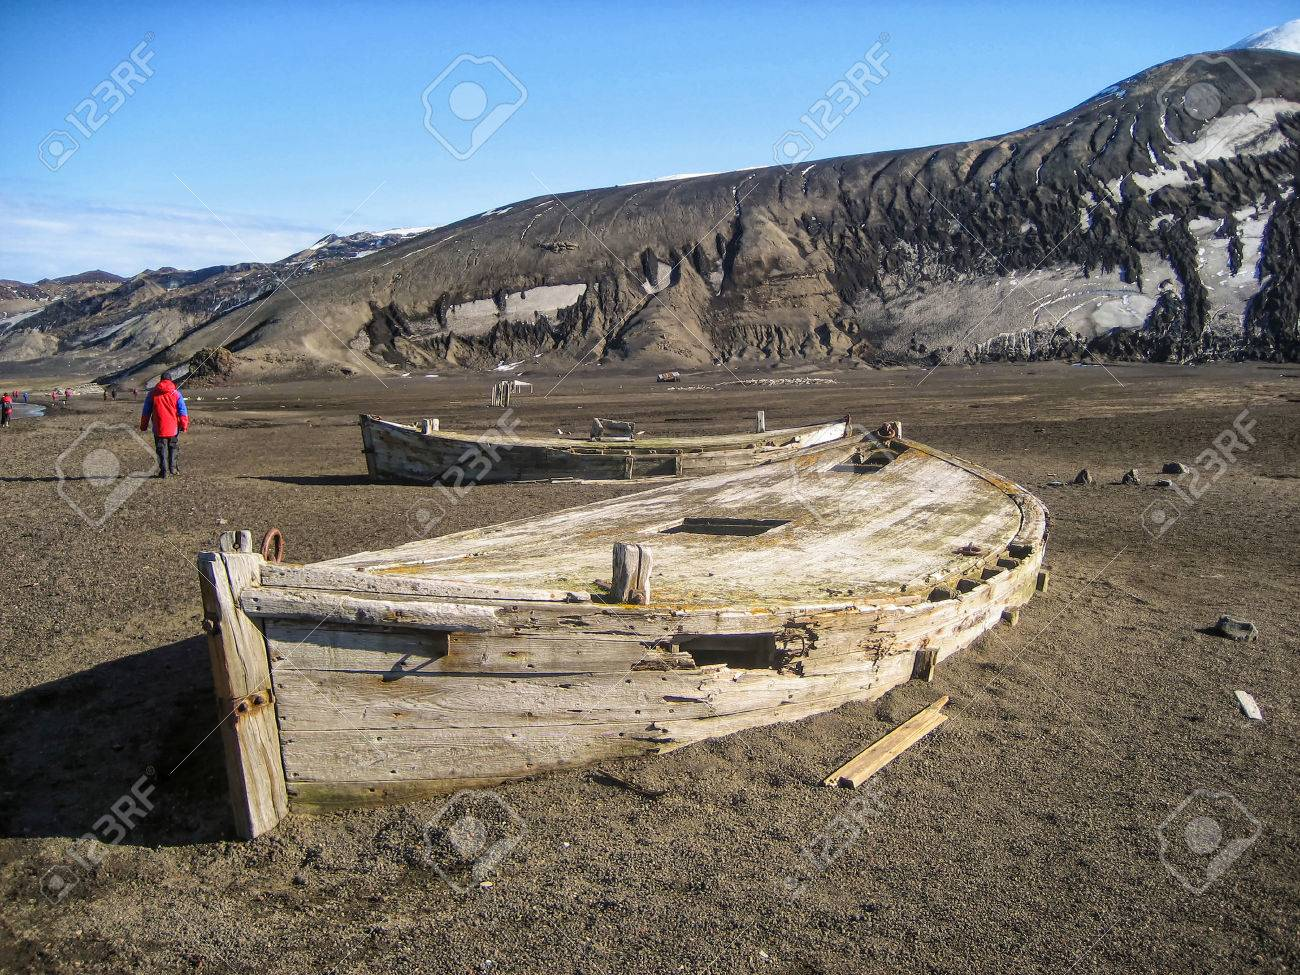 Abandoned whaling boats on Deception Island, the caldera of an